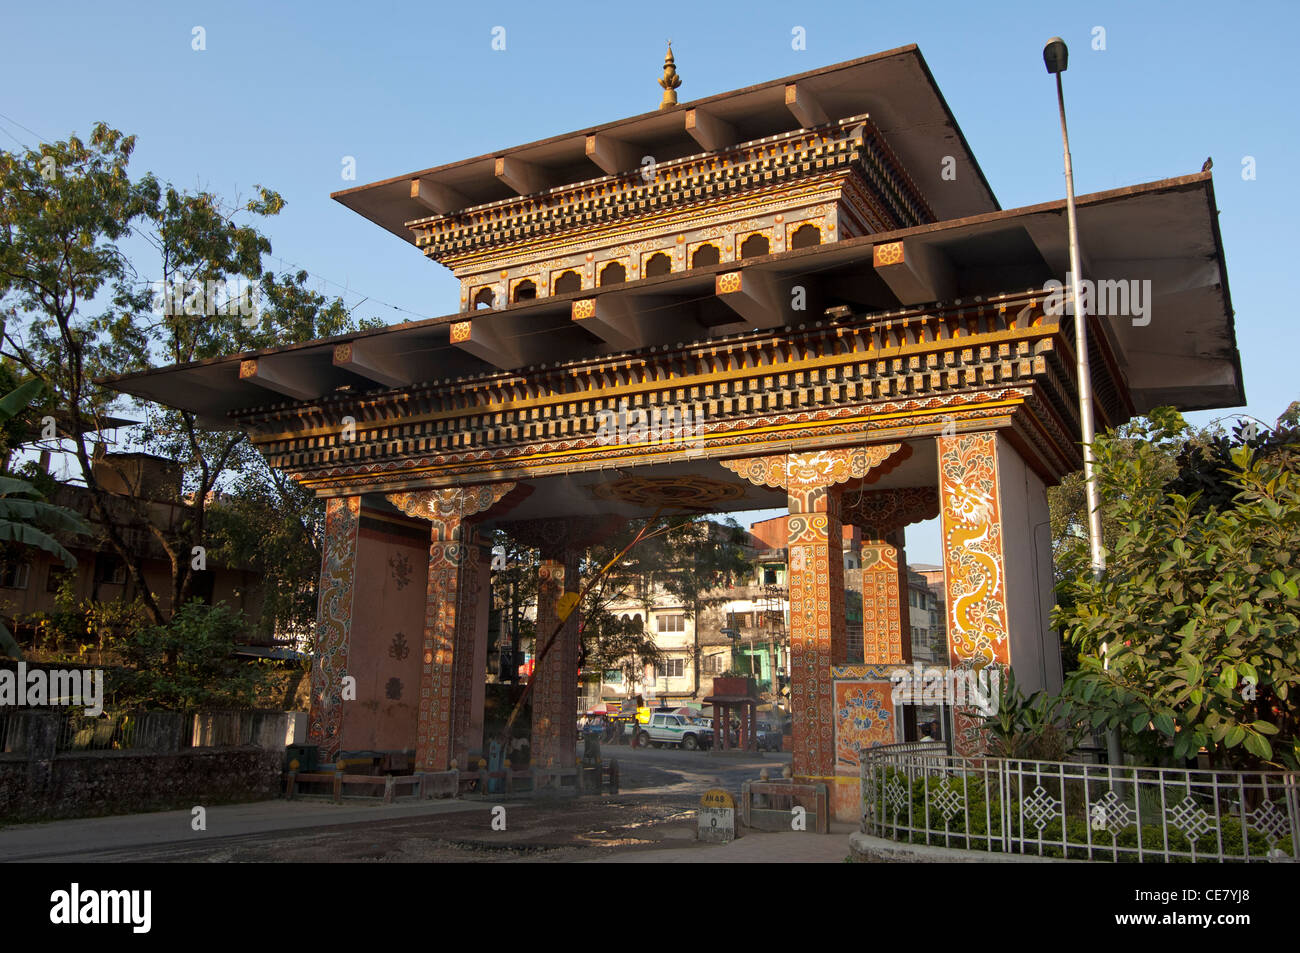 The Gate of Bhutan at the border between India and Bhutan in Phuentsholing, Bhutan - Stock Image